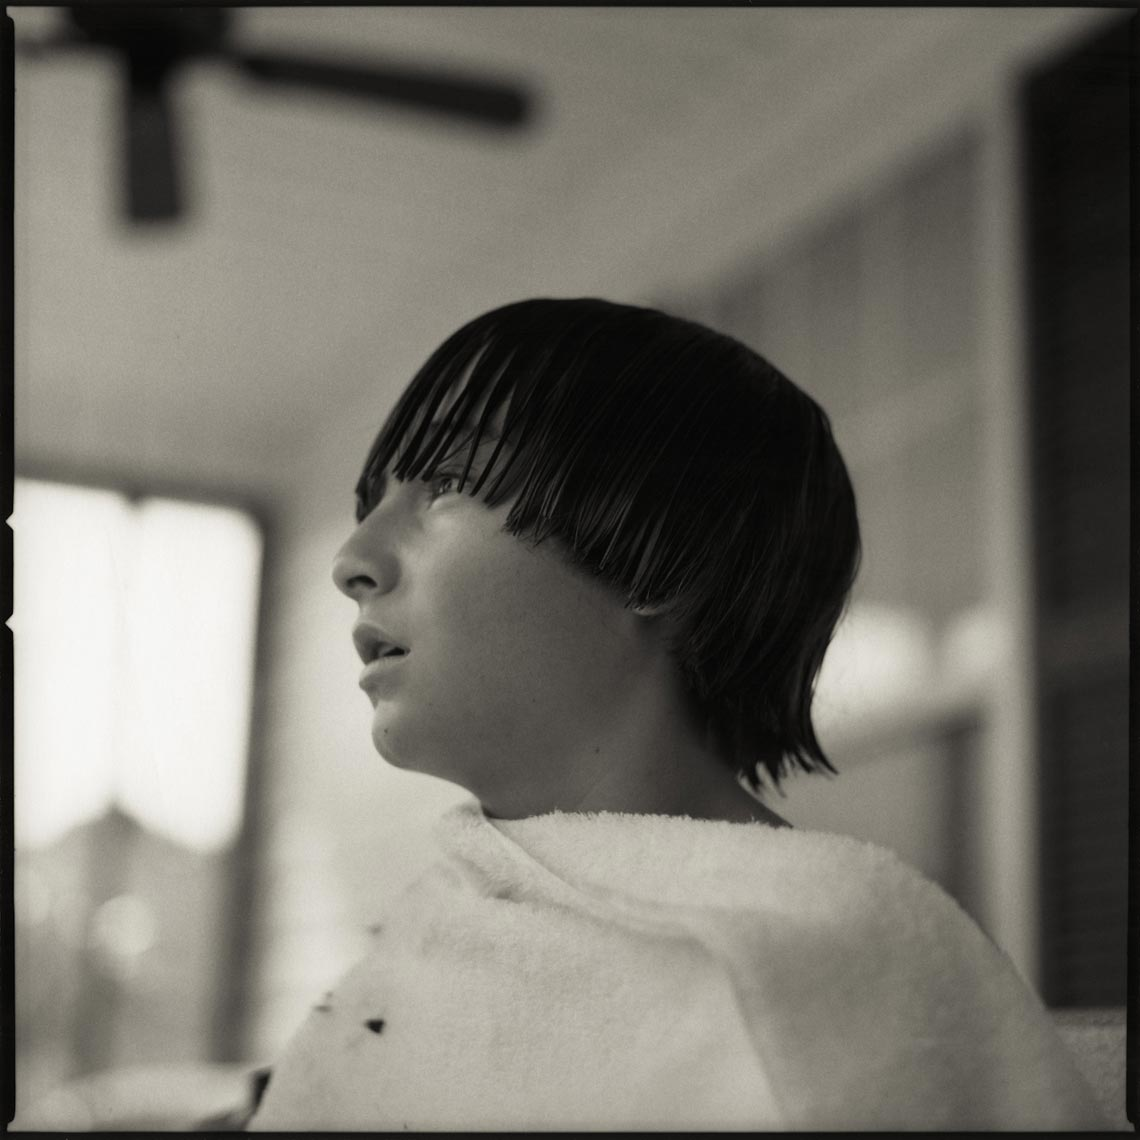 Haircut - Tybee Island, GA - Thirteen